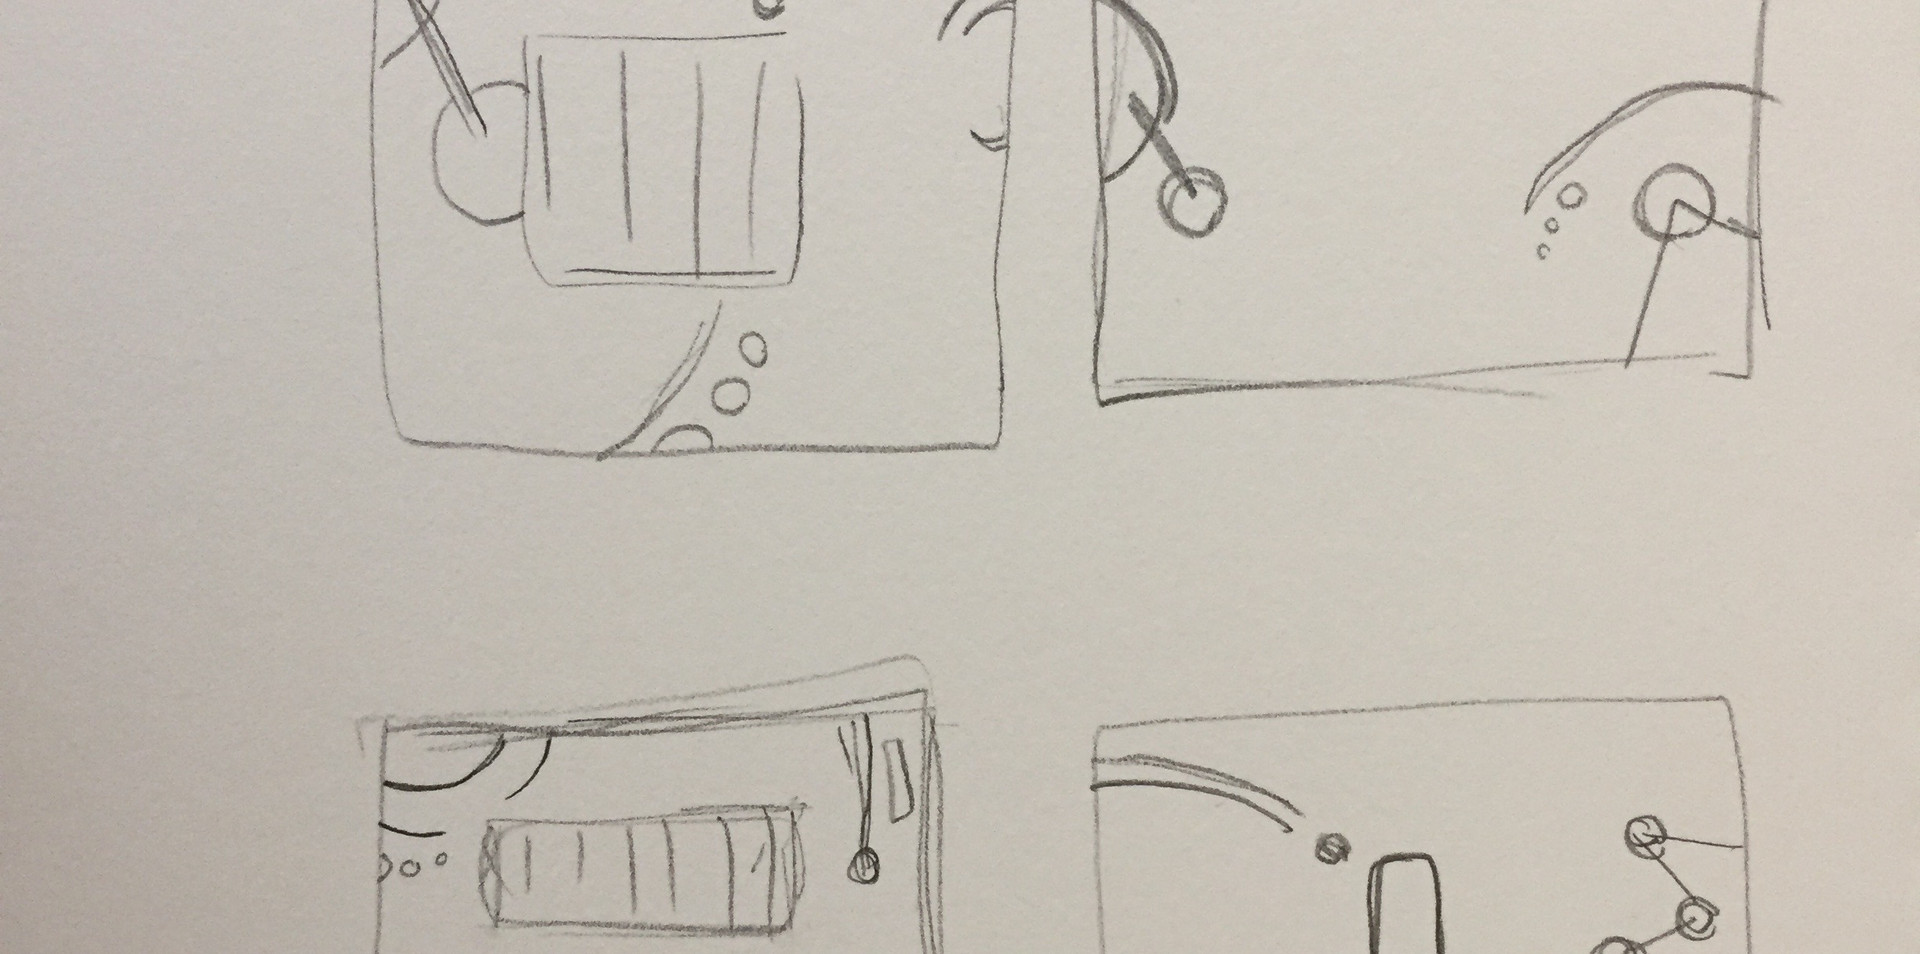 Branding Sketches and Brainstorming